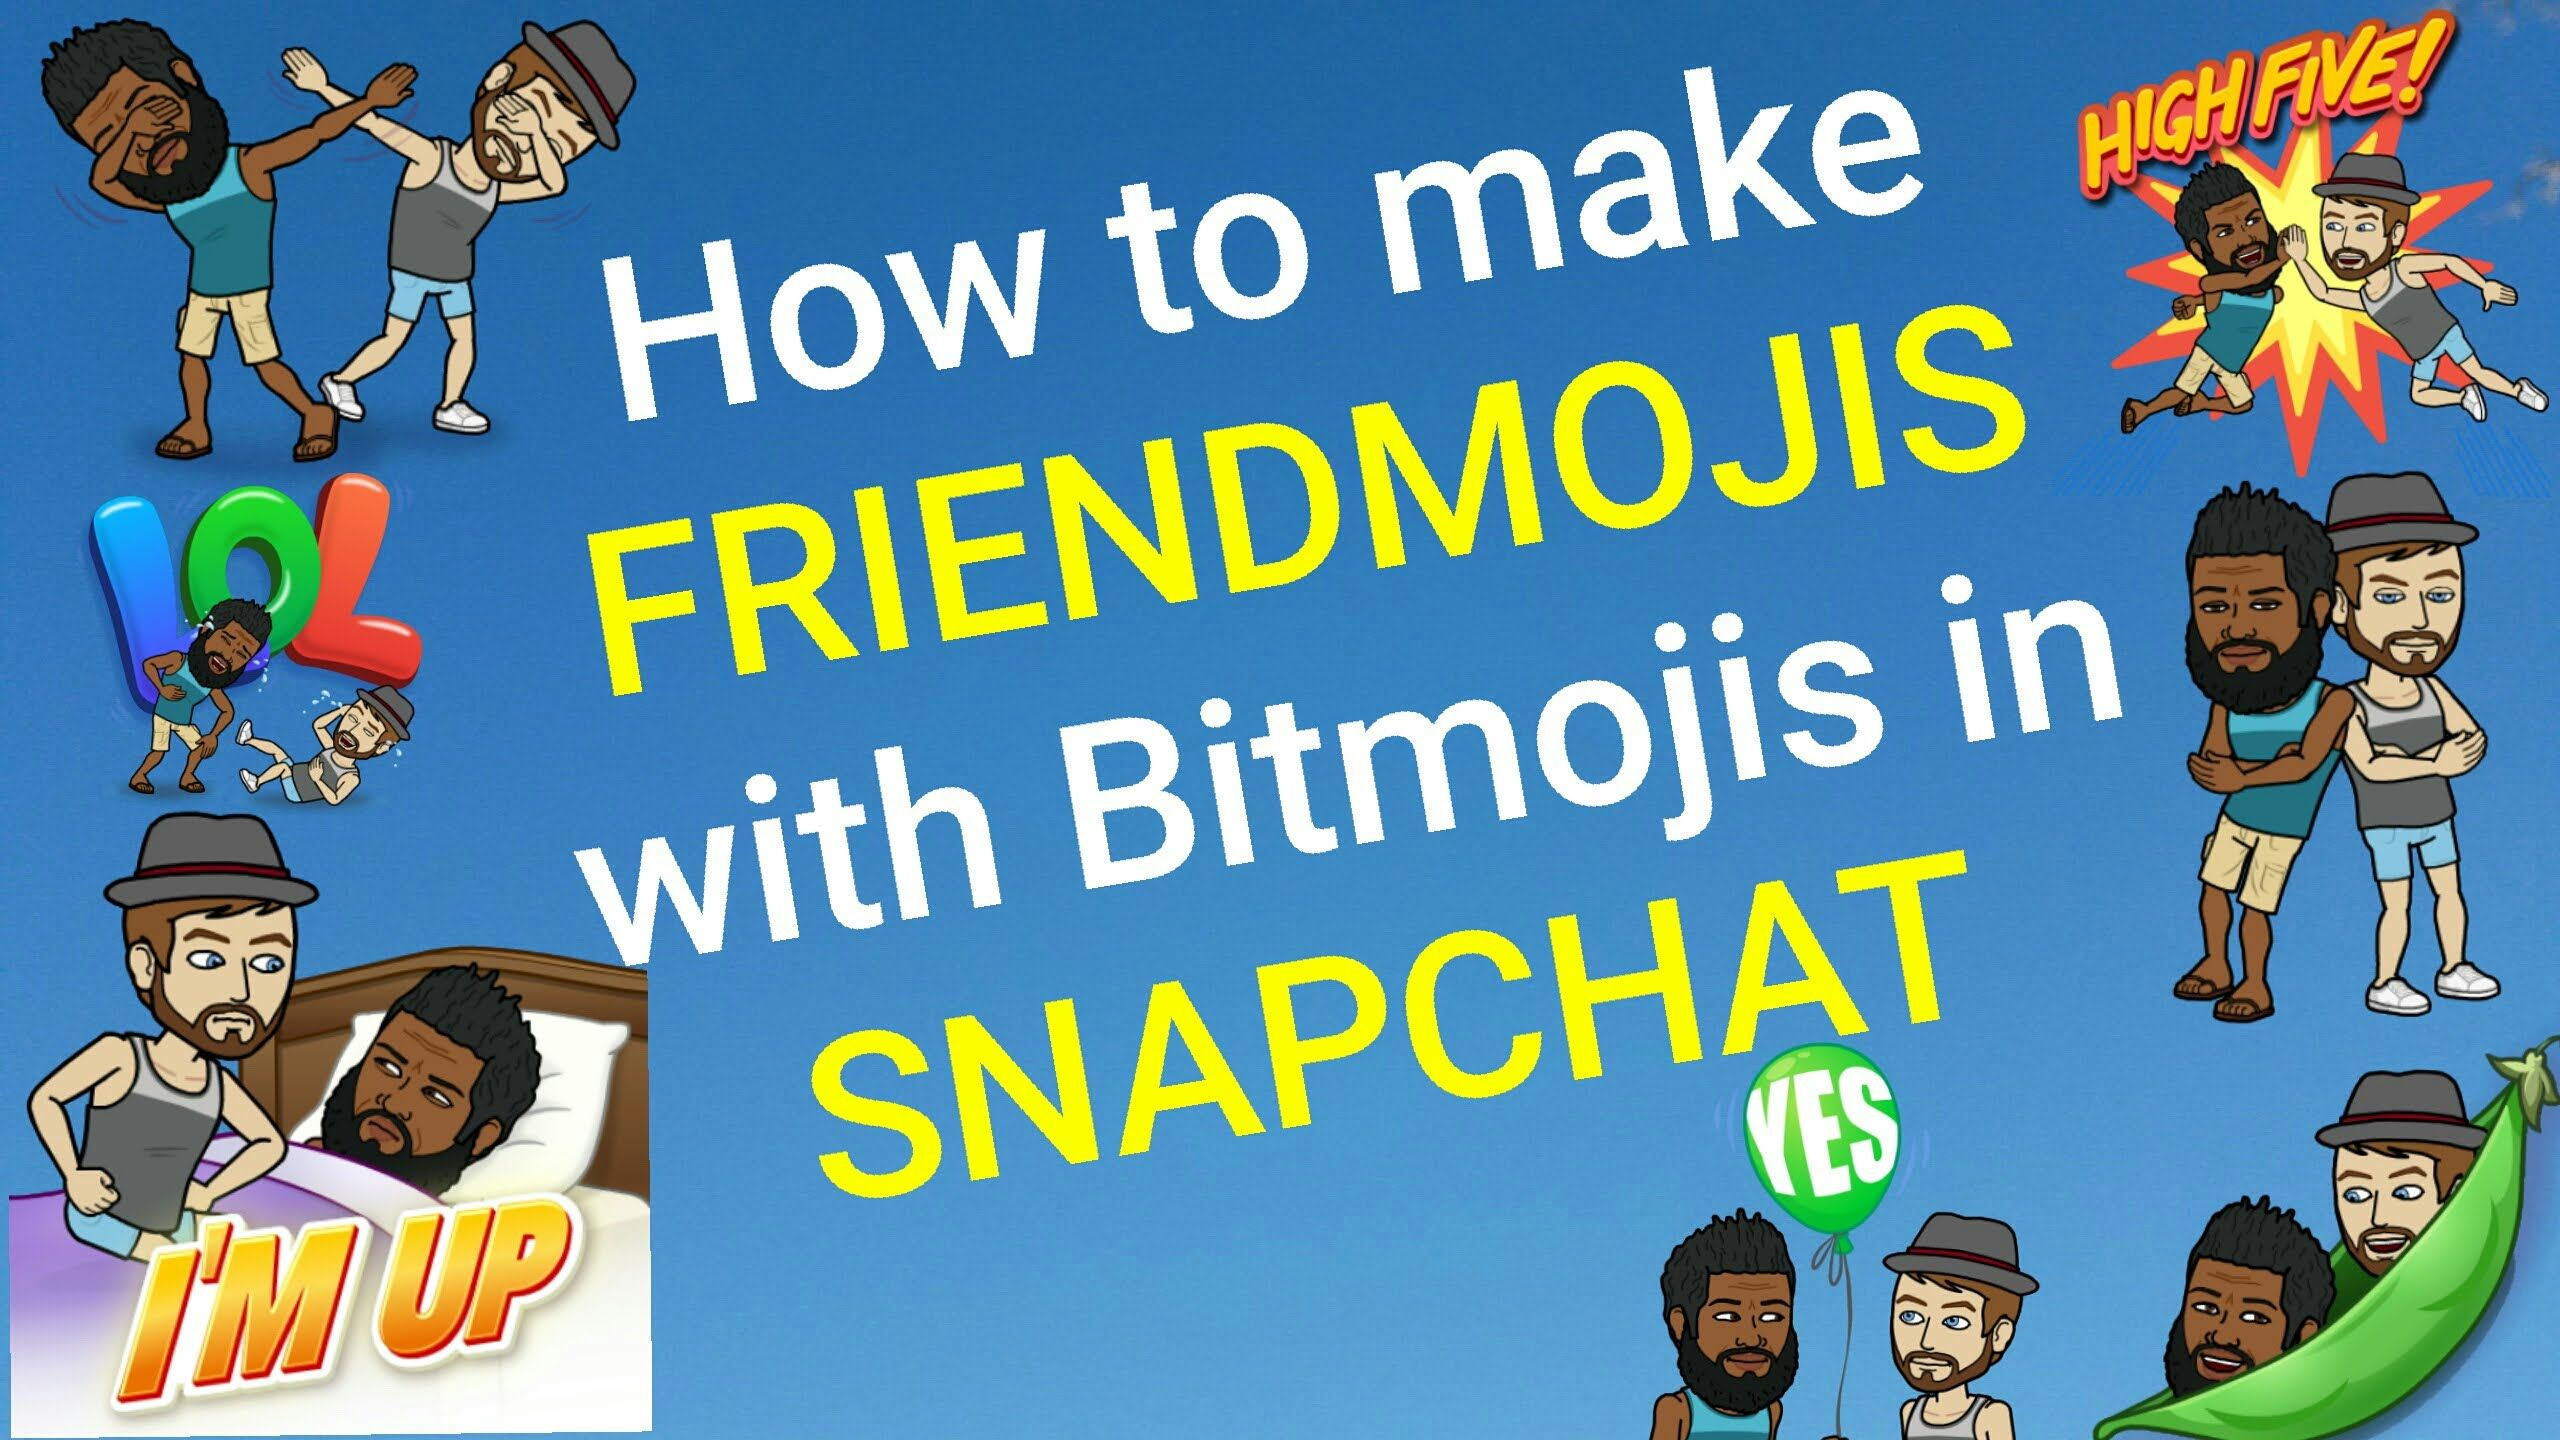 how to make friendmojis with a bitmoji in snapchat snapchat 101